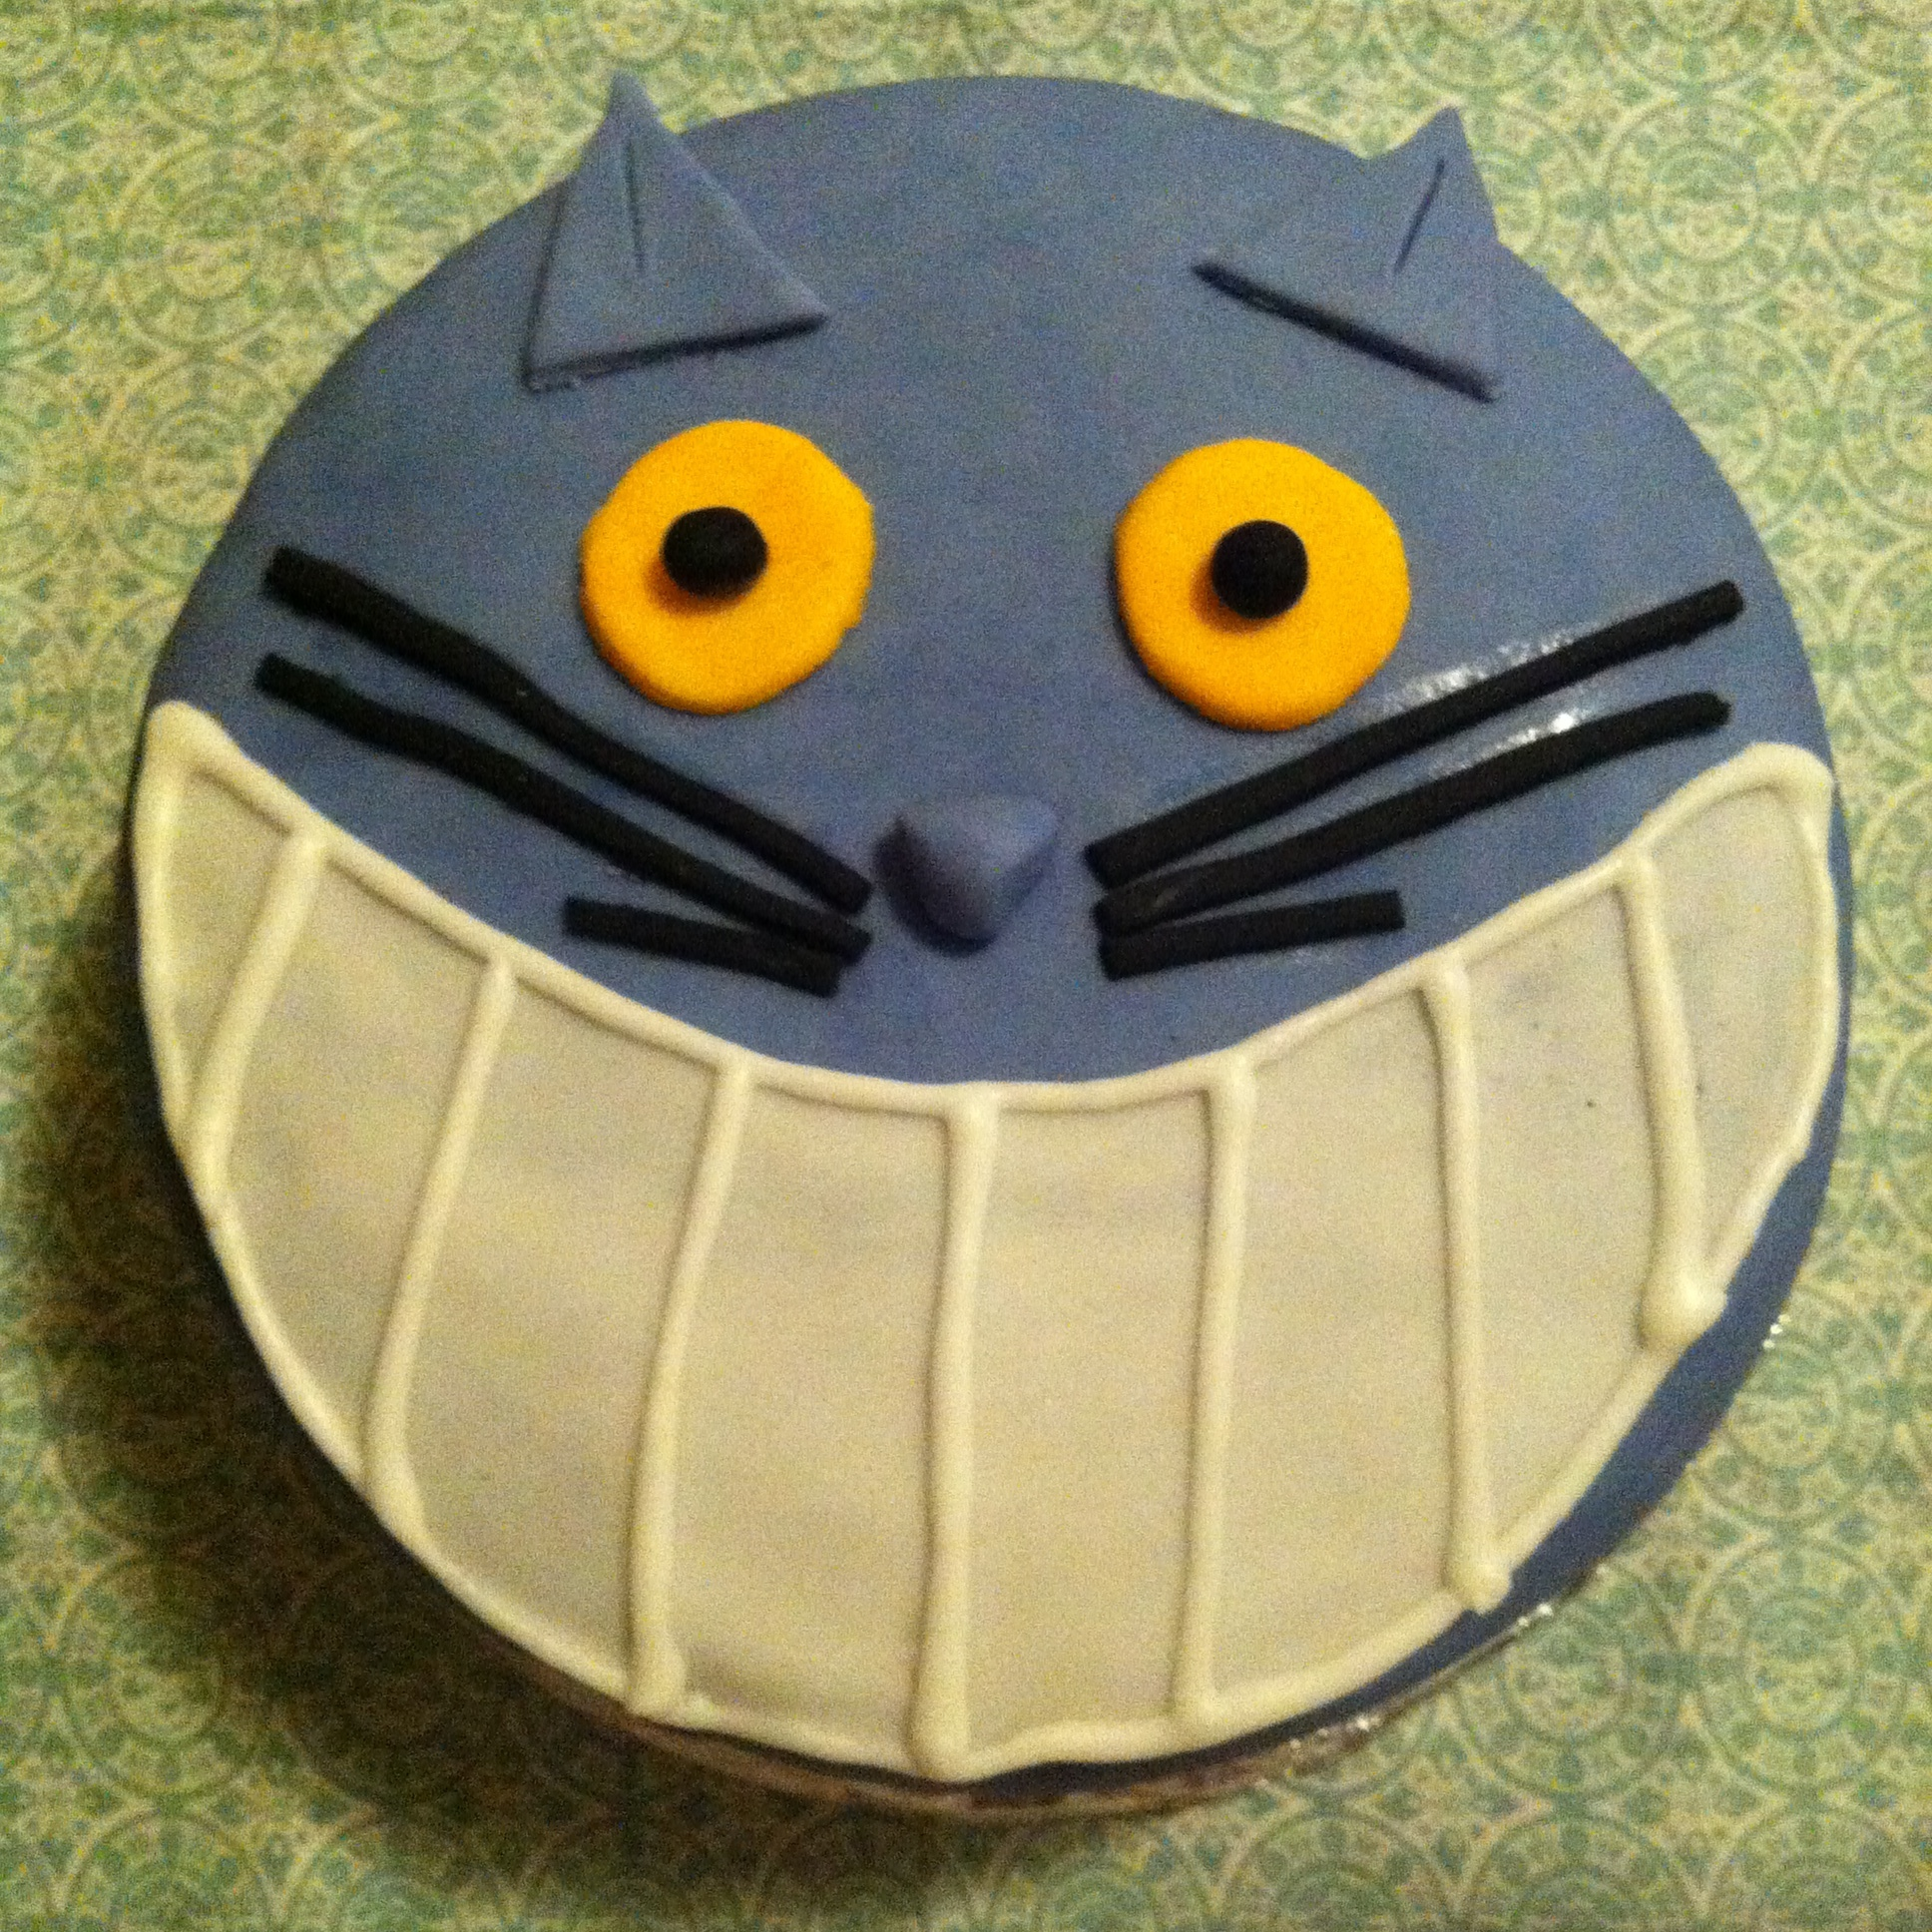 Cheshire Cat Cake for Melbourne Cake Club - March Madness